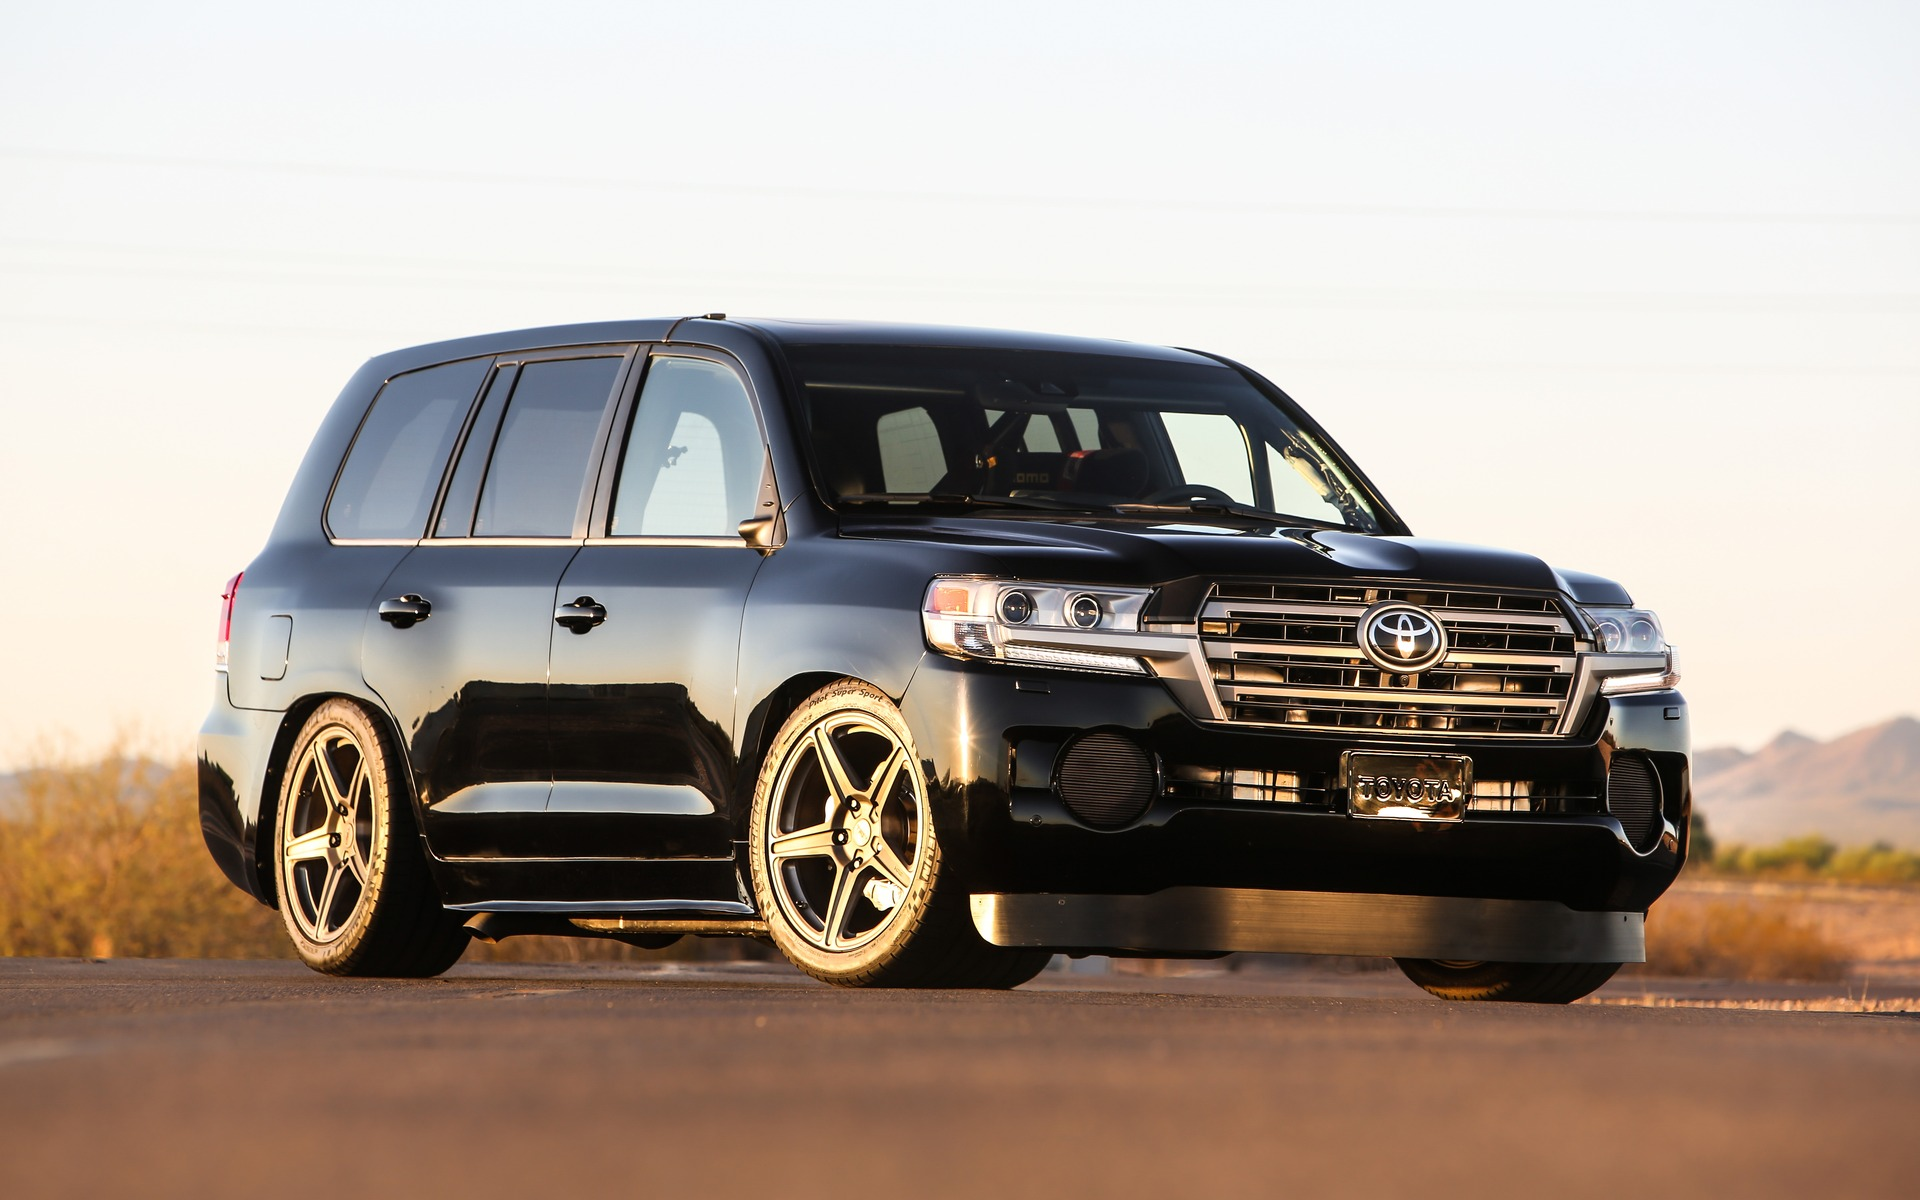 toyota land speed cruiser 354 km h for the big suv the car guide. Black Bedroom Furniture Sets. Home Design Ideas